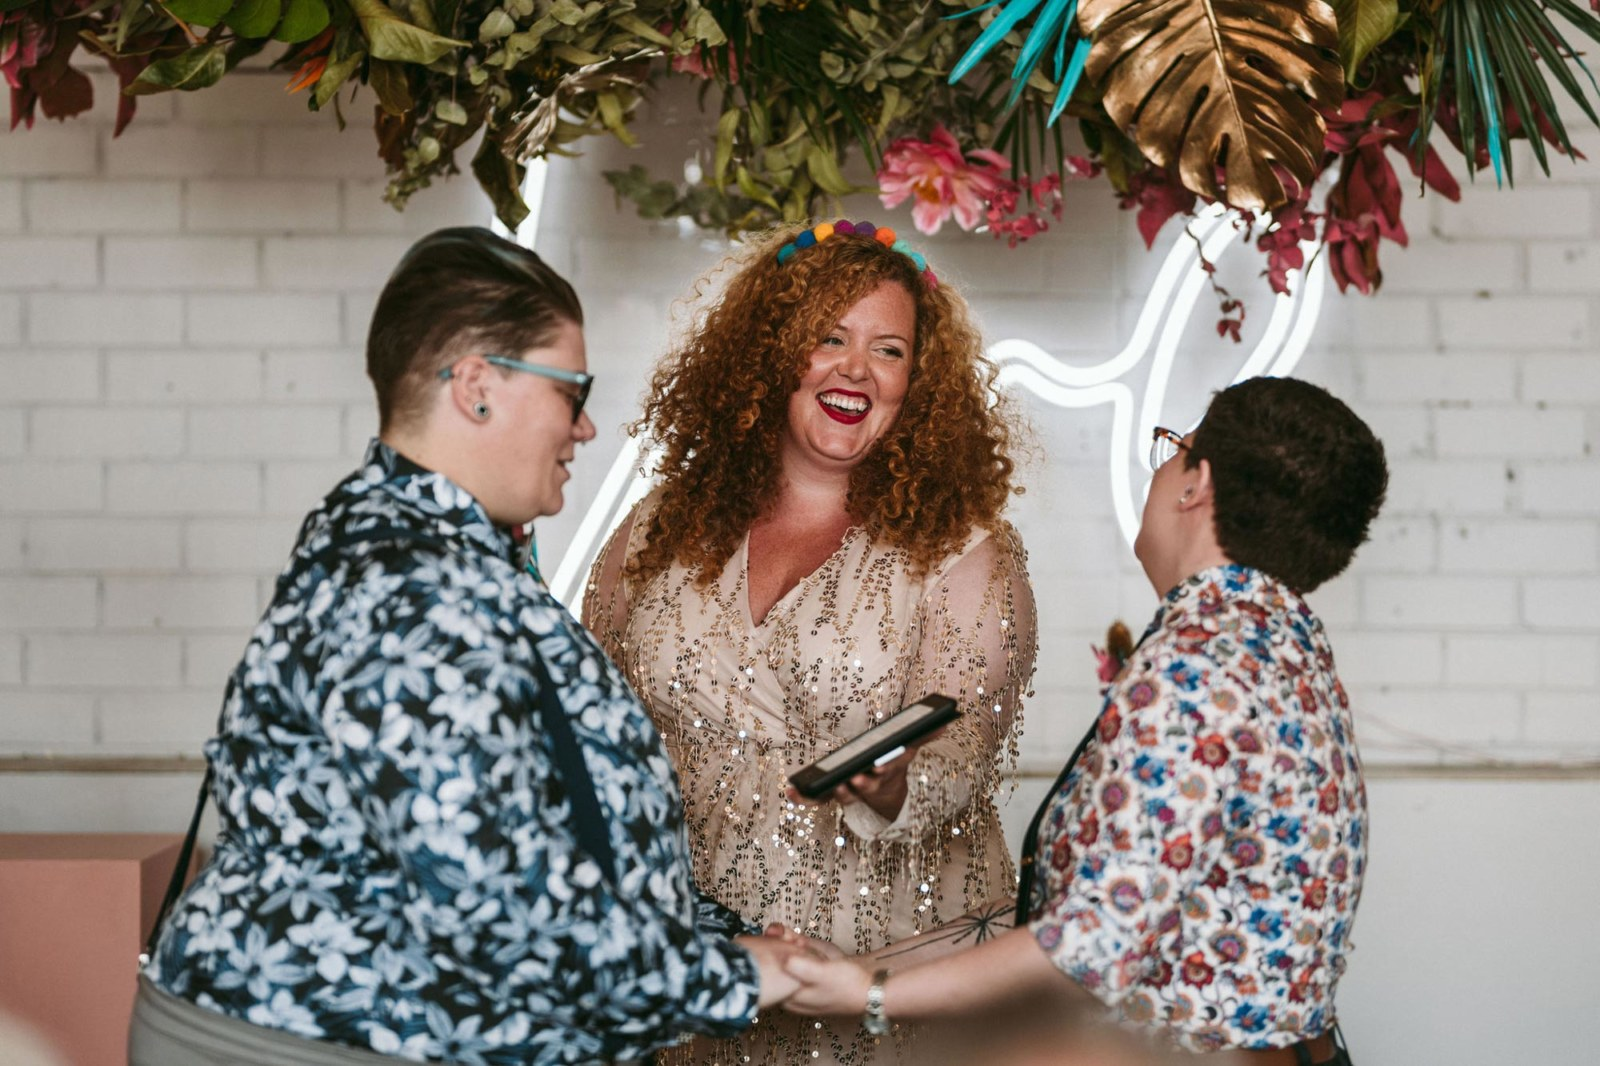 How much does a wedding celebrant cost in Australia?